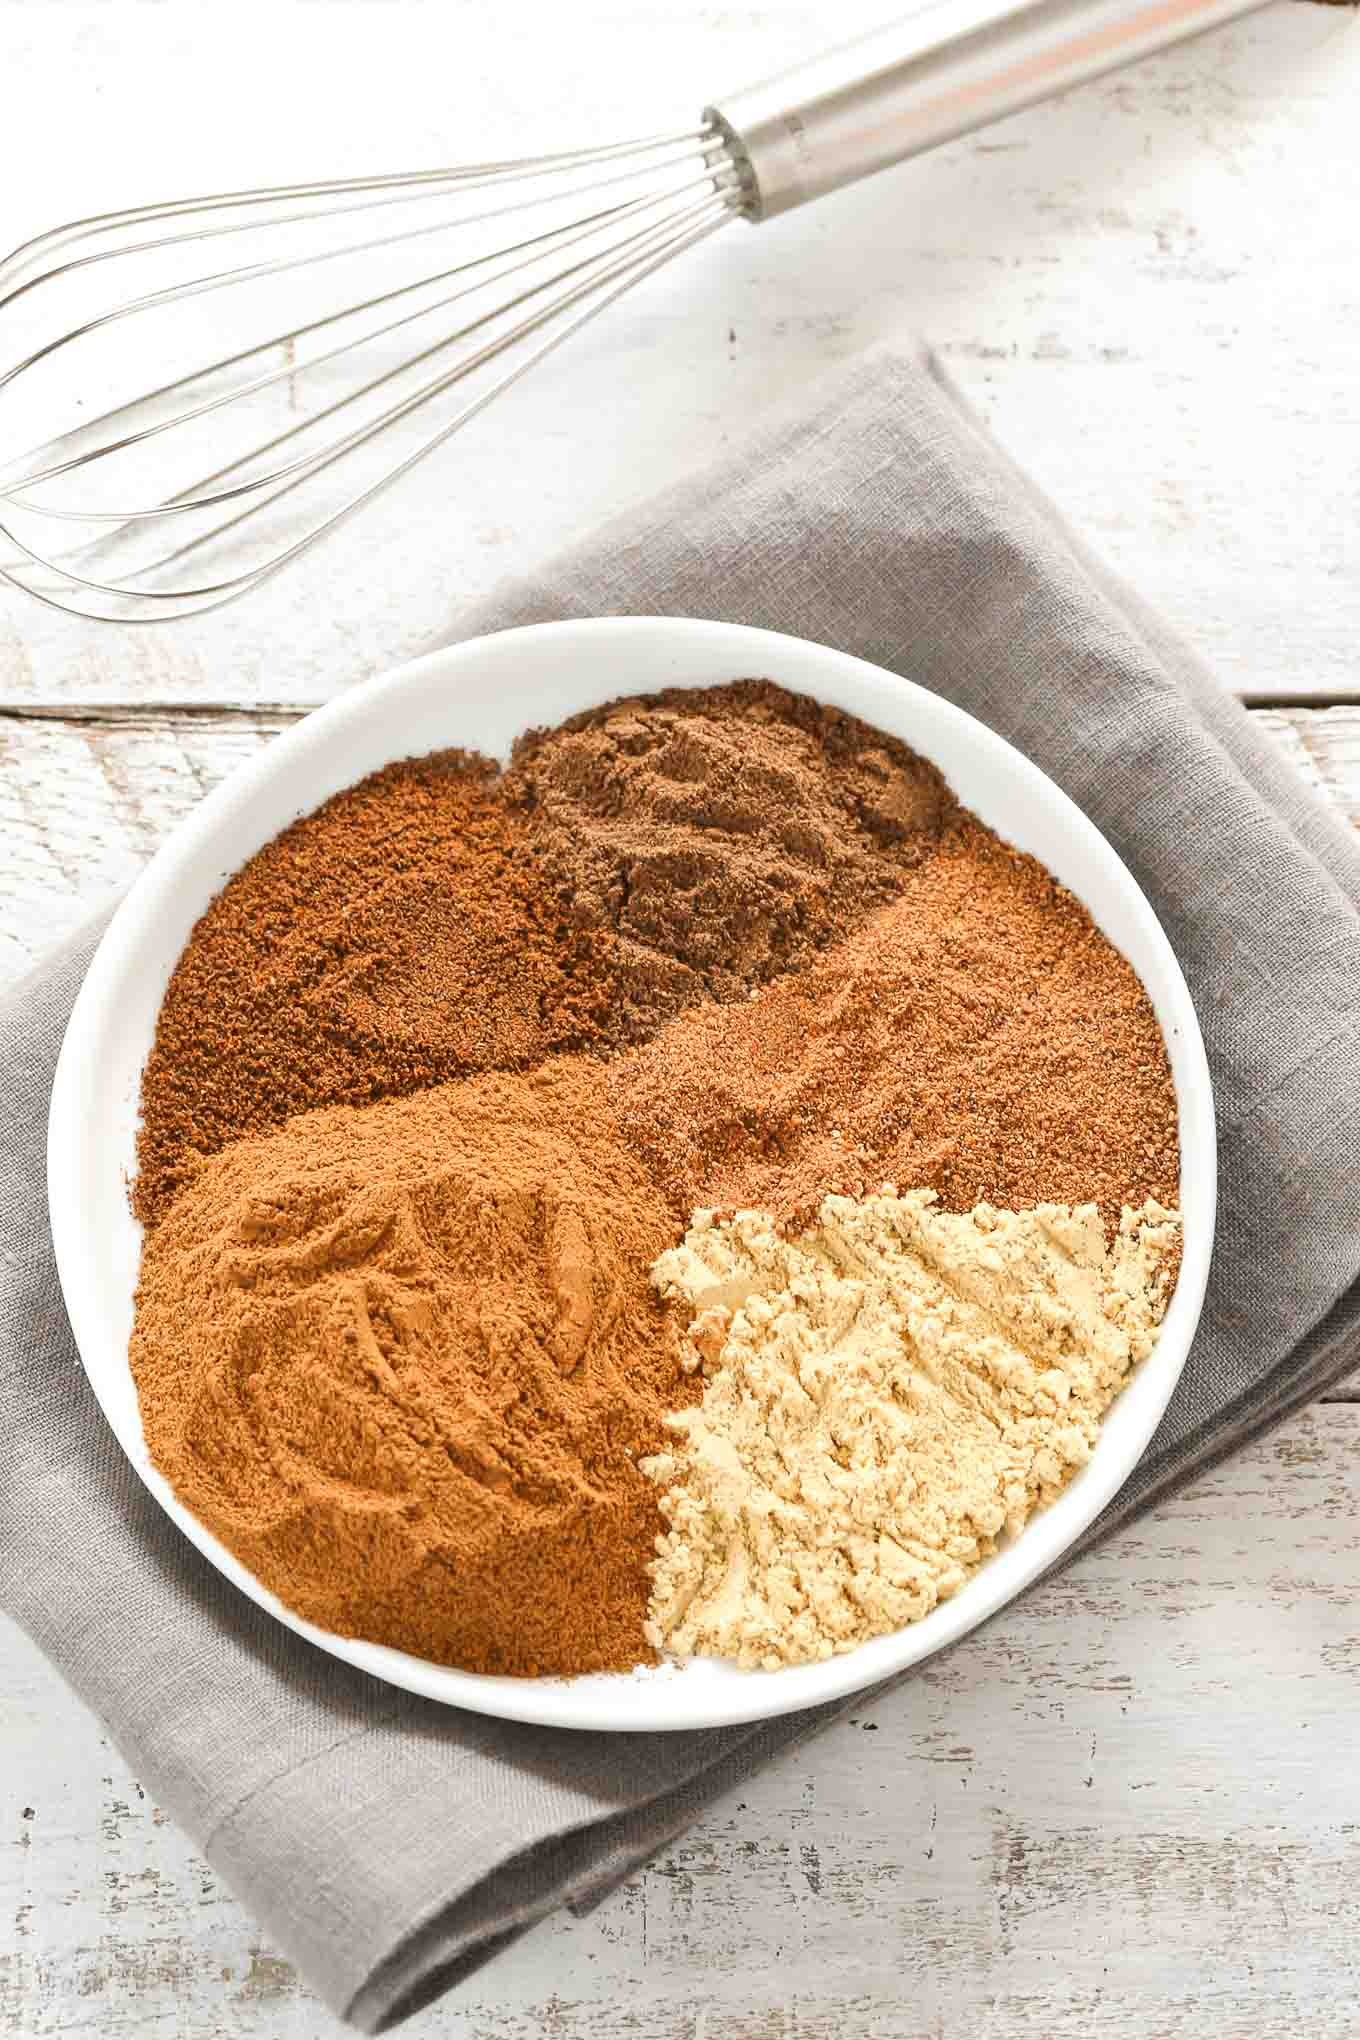 Learn how to make your own pumpkin pie spicein less than 5 minutes with just a few common spices. Perfect for fall cookies, breads, pies, and so much more!